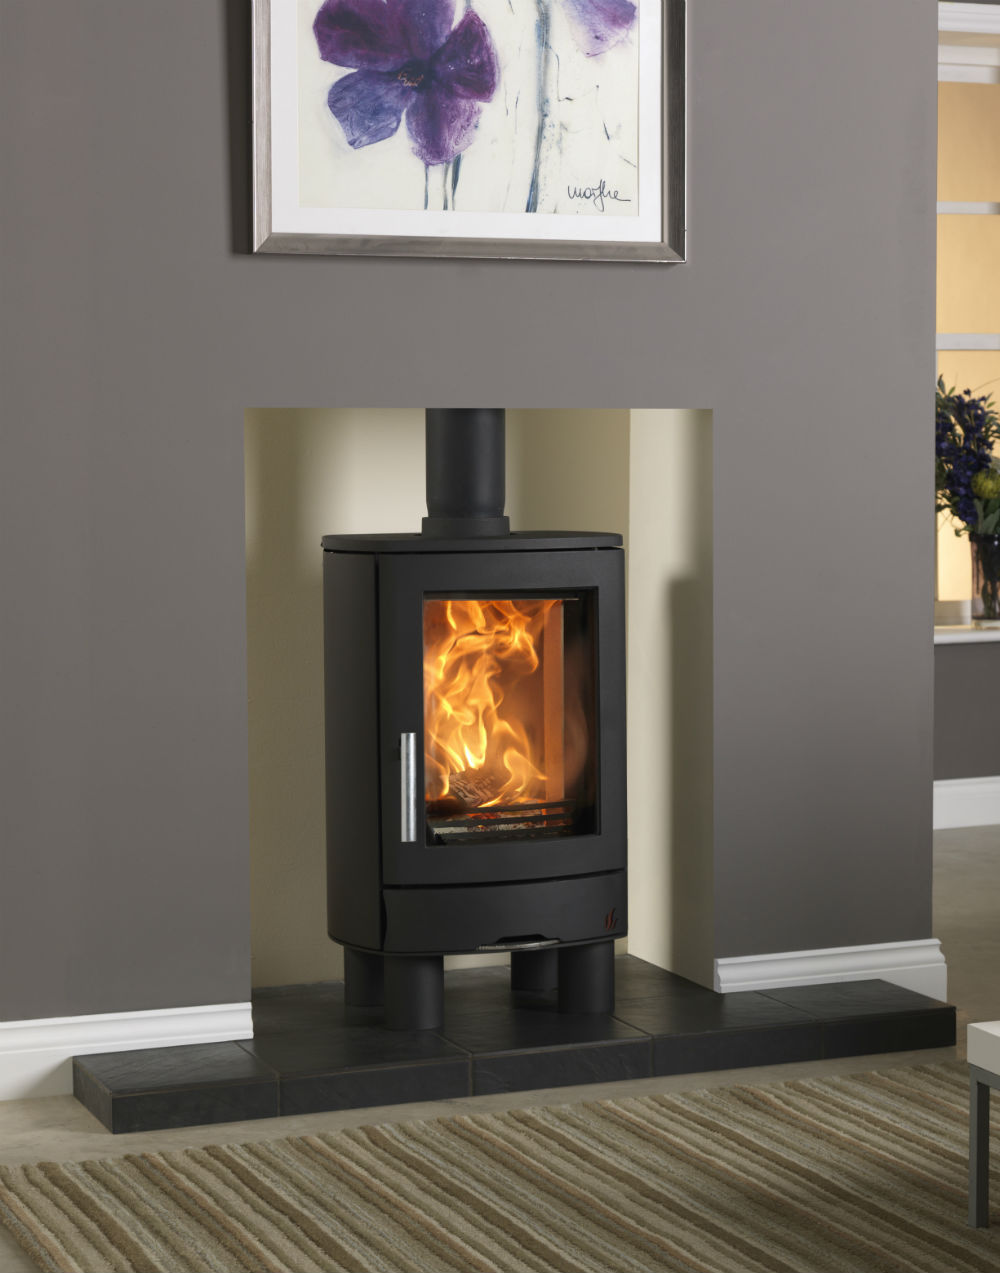 acr neo 1f 5kw – acr stoves, external air supply stoves